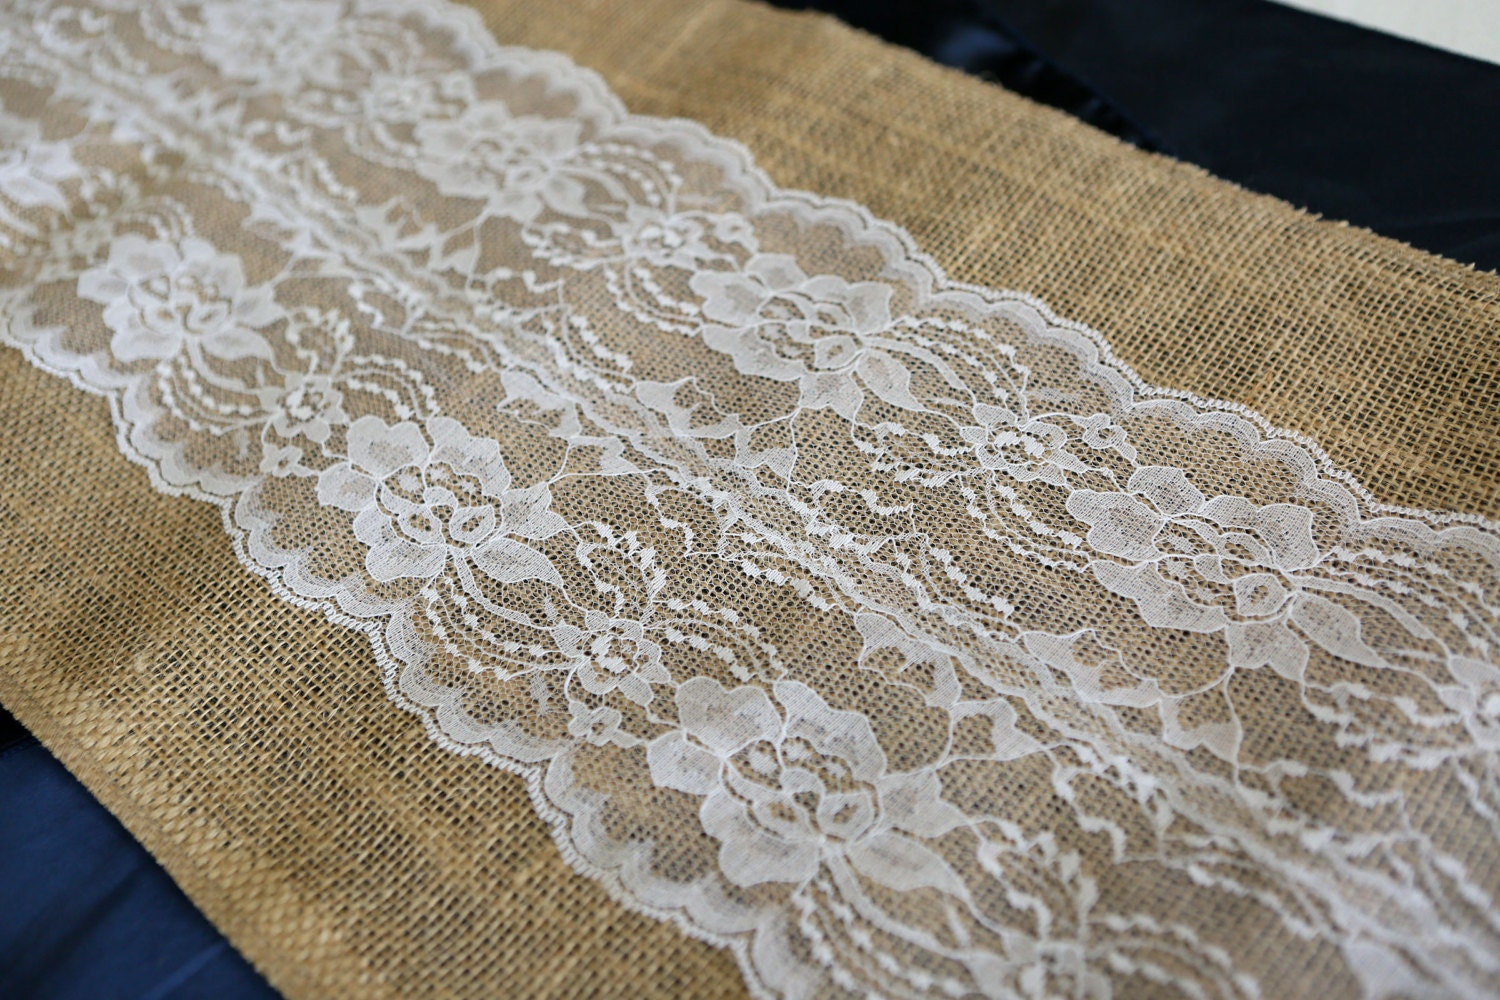 Burlap & Lace Table Runner with a Variety of Lace Color